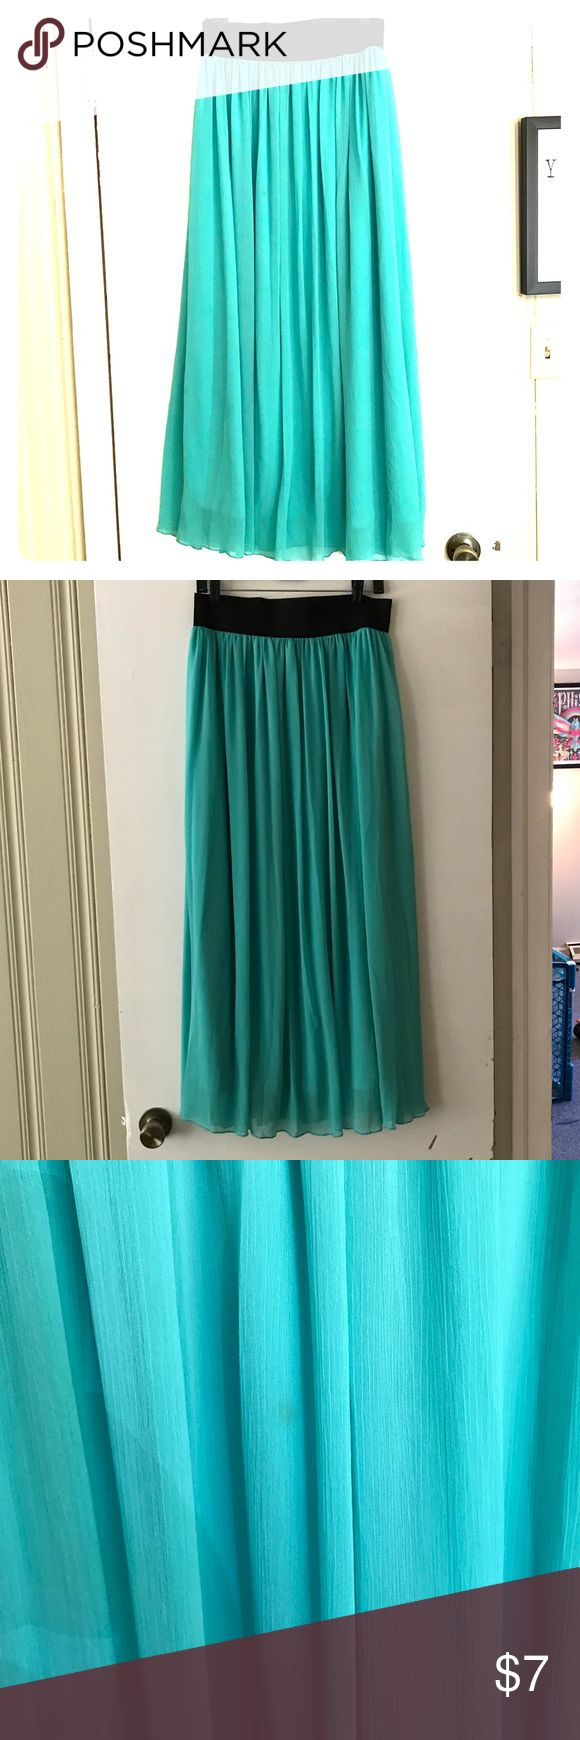 Gypsy maxi skirt Embrace your inner mermaid! Size XL from rue 21. Flowy and soft. Color is a sea foam/turquoise. There is a small stain shown in the picture. Rue21 Skirts Maxi